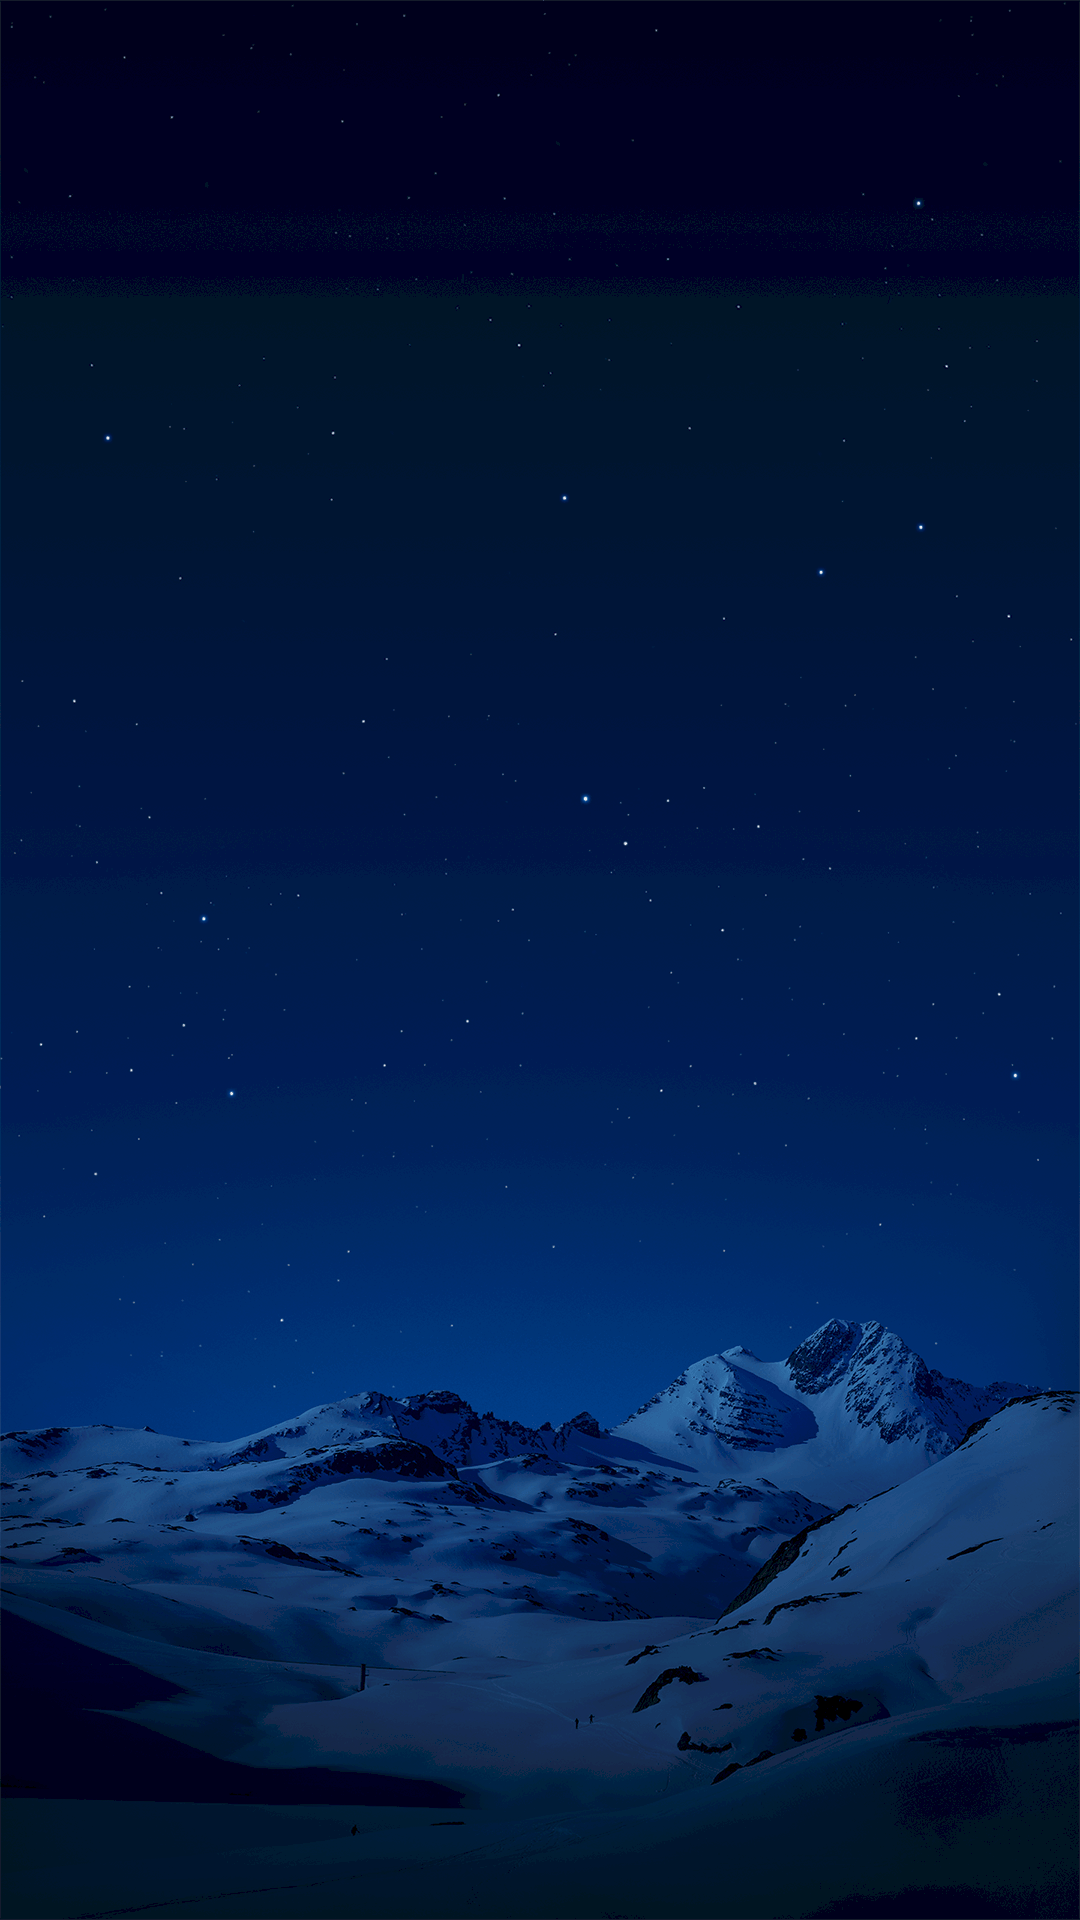 Hd wallpaper vivo - Vivo X9 Wallpapers Themefoxx